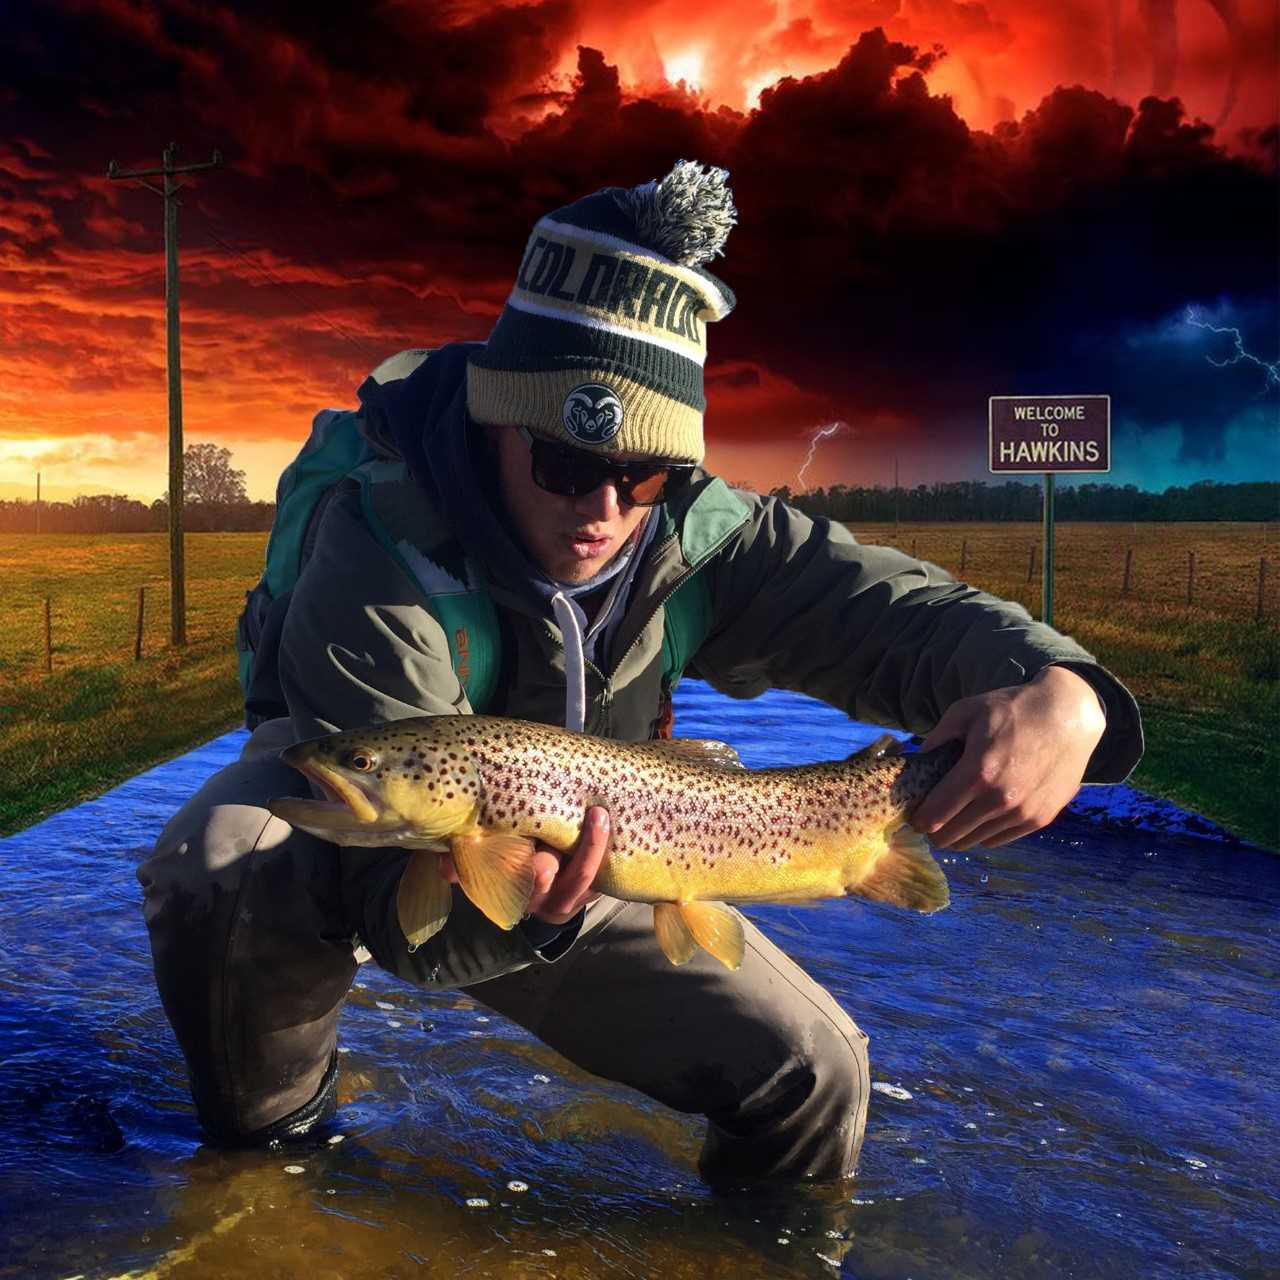 """Bradey Hall  Born in Texas and raised in Colorado. Bradeys loves the outdoors and is stoked to be able to teach fly fishing to others. Bradey began fishing at a young age but it wasn't until his Senior year of College he began fly fish. Currently located in Colorado he is our lead mentor in Colorado Springs. Bradey loves fishing rivers all over Colorado but would pick Cheeseman Canyon as his favorite place to fish.   """"It's the balance of peace and chaos that got me addicted to fly fishing"""" - Bradey Hall"""